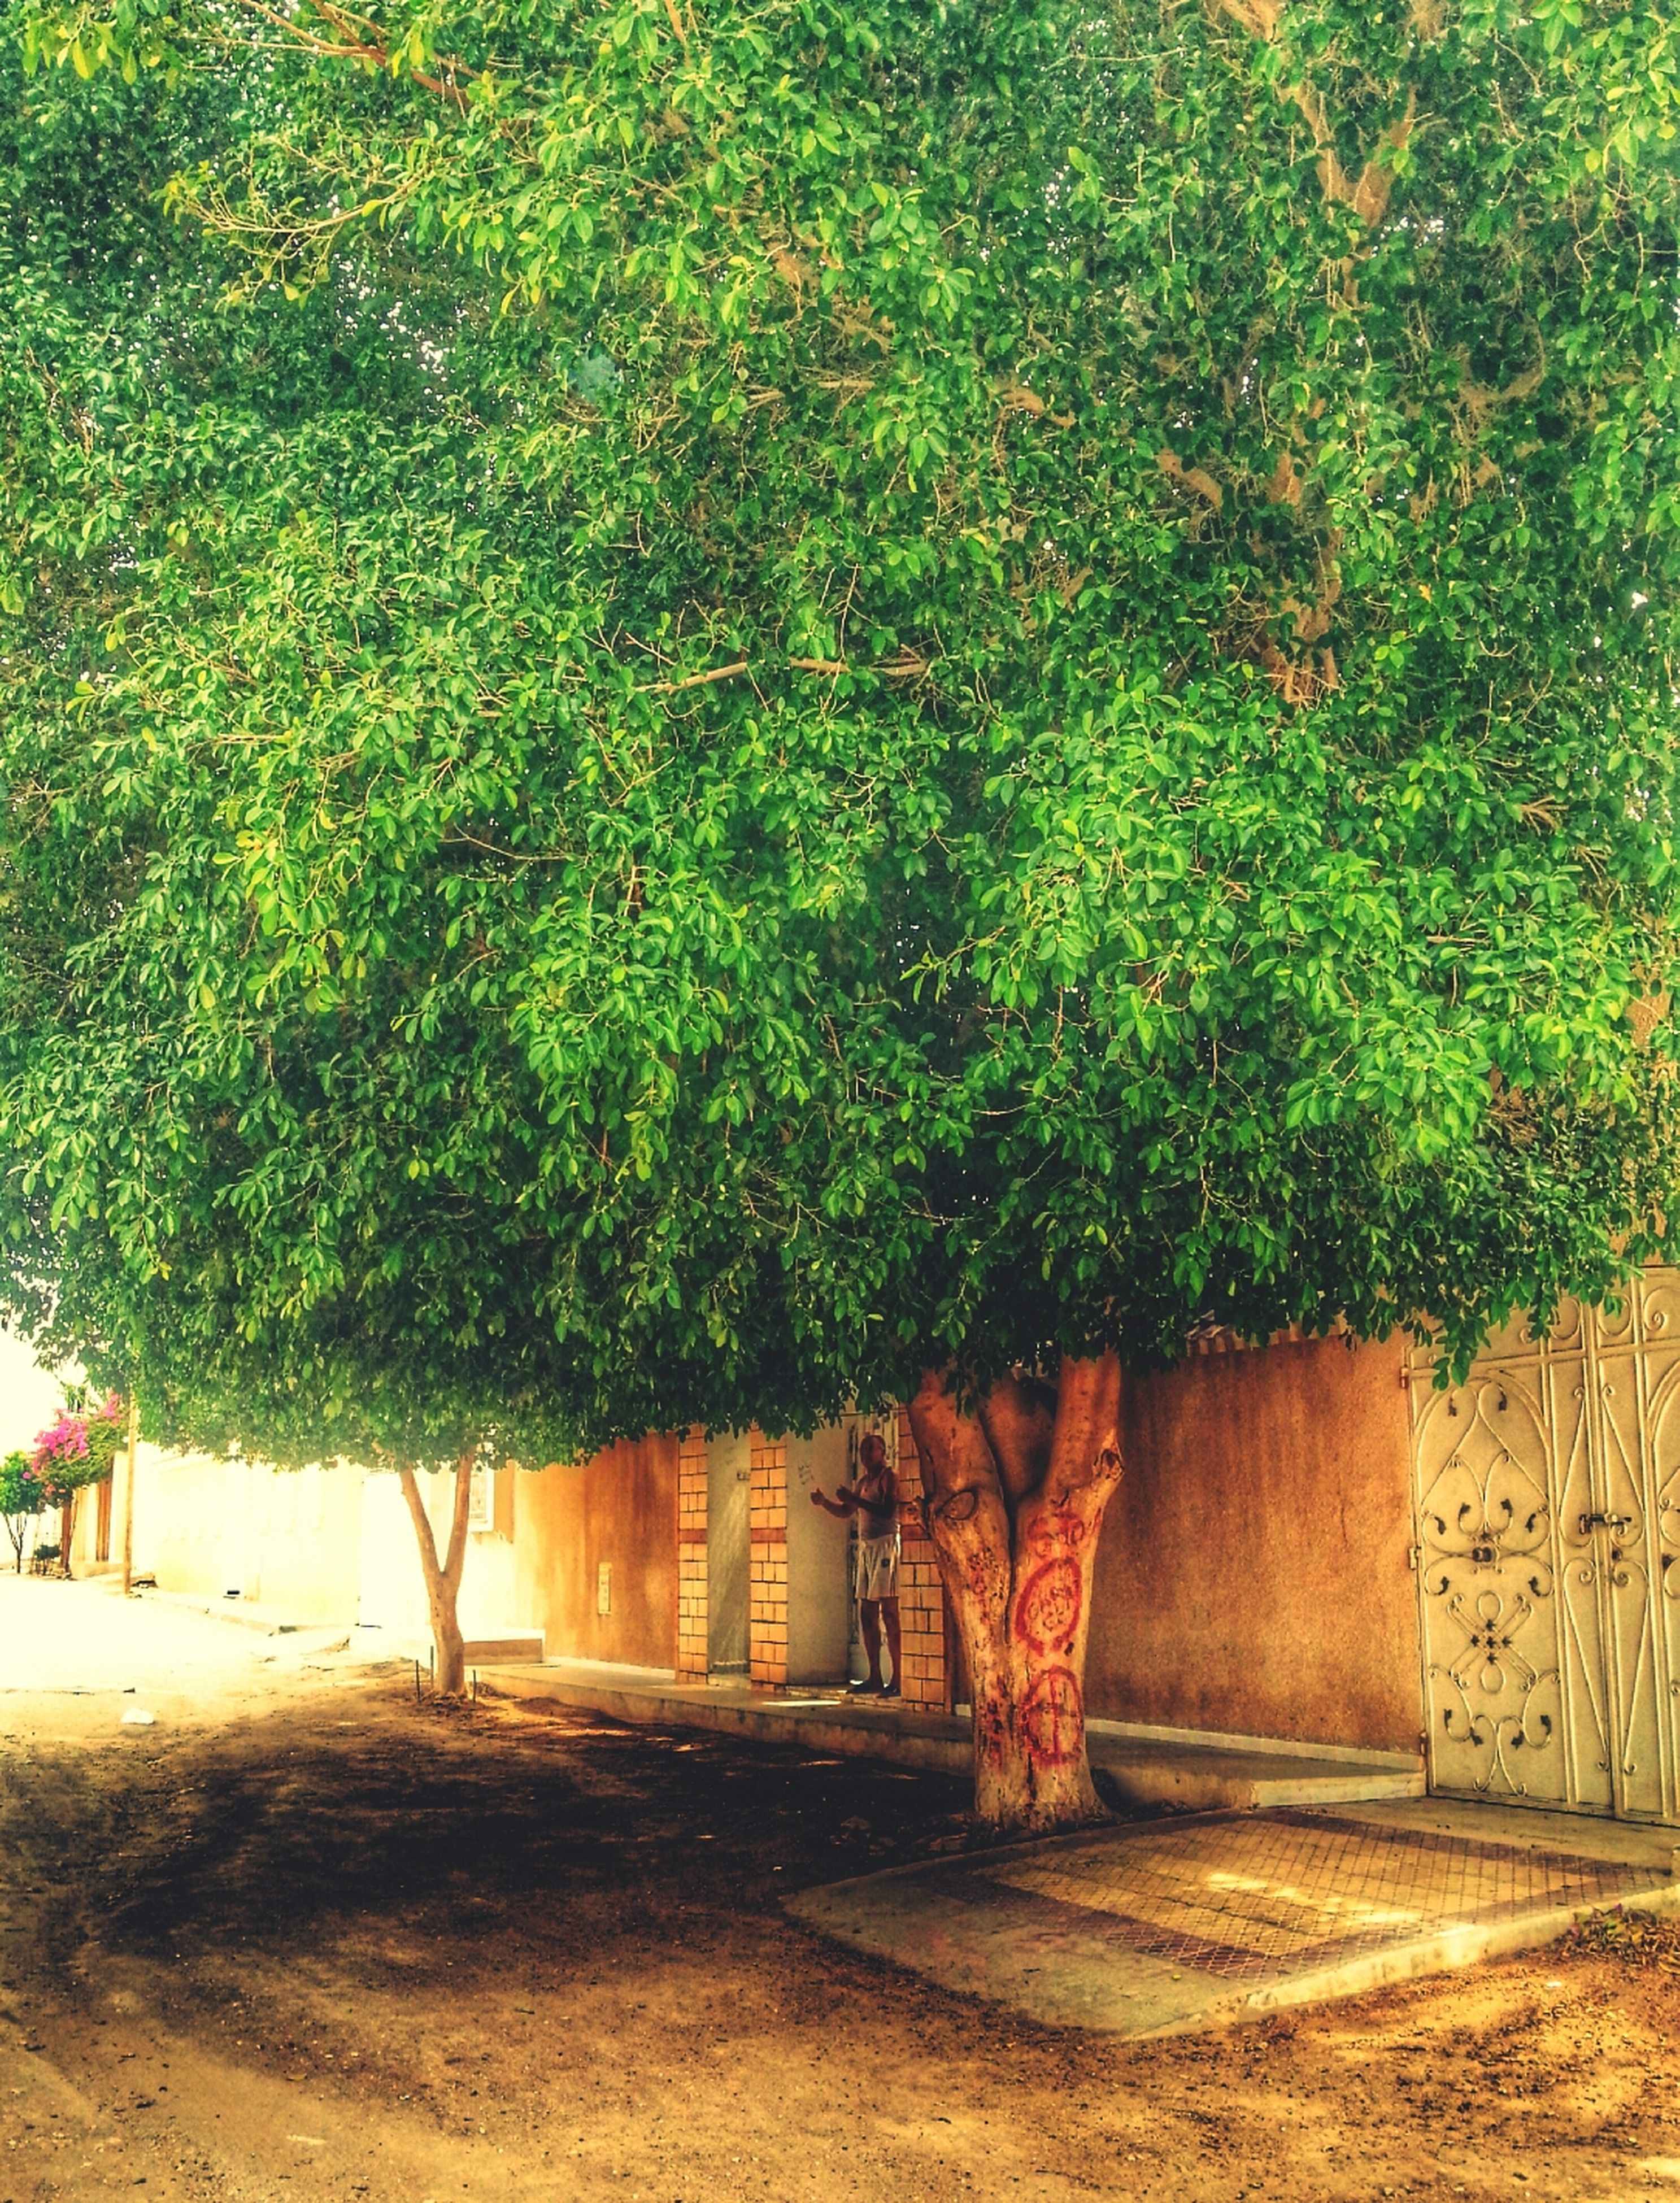 built structure, tree, architecture, growth, green color, building exterior, house, plant, grass, sunlight, nature, day, outdoors, no people, field, wall - building feature, door, wood - material, shadow, residential structure